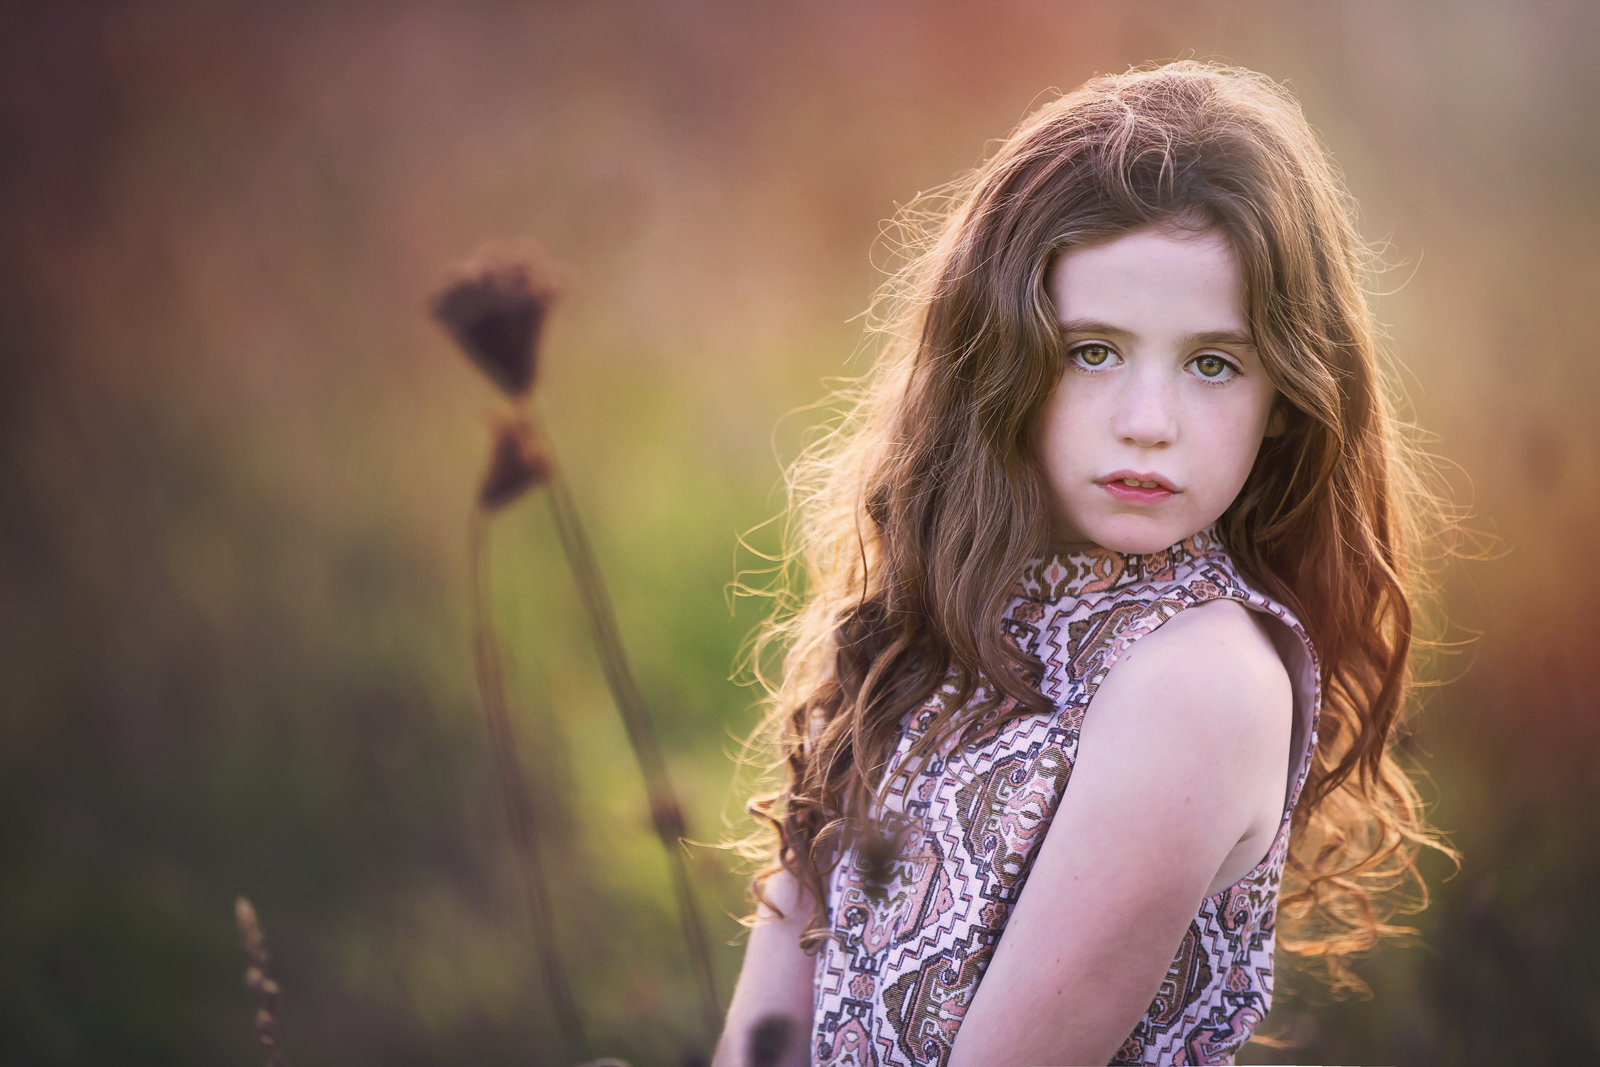 A brunnette girl in the last day sun by Children's photographer Jessica Elisze. Norwich, Norfolk.